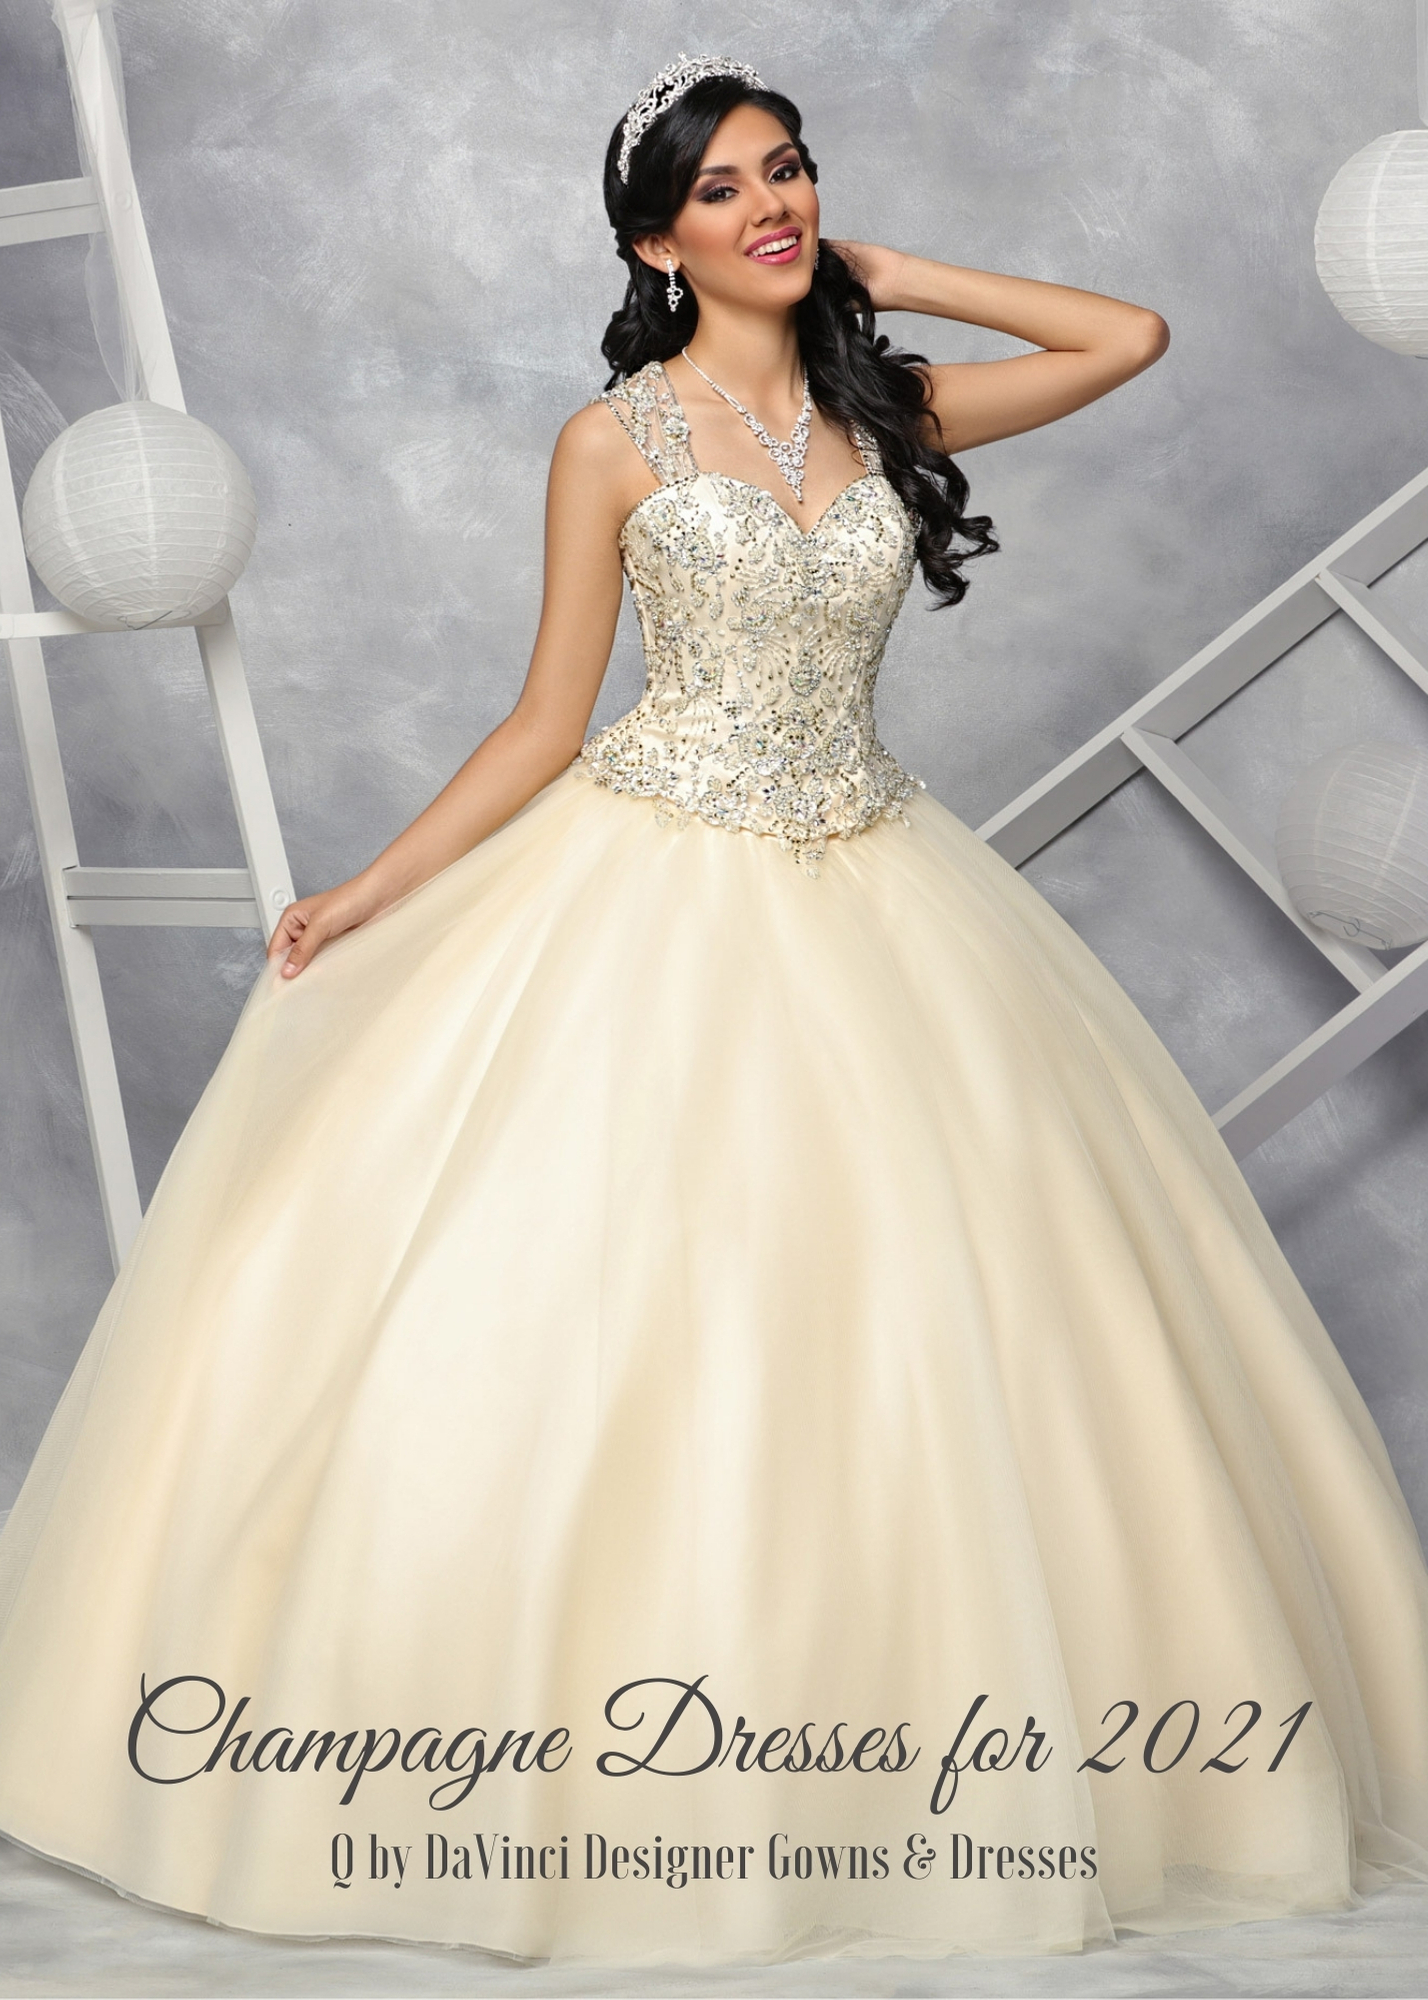 Champagne Quinceanera Dresses for 2021 – Q by DaVinci